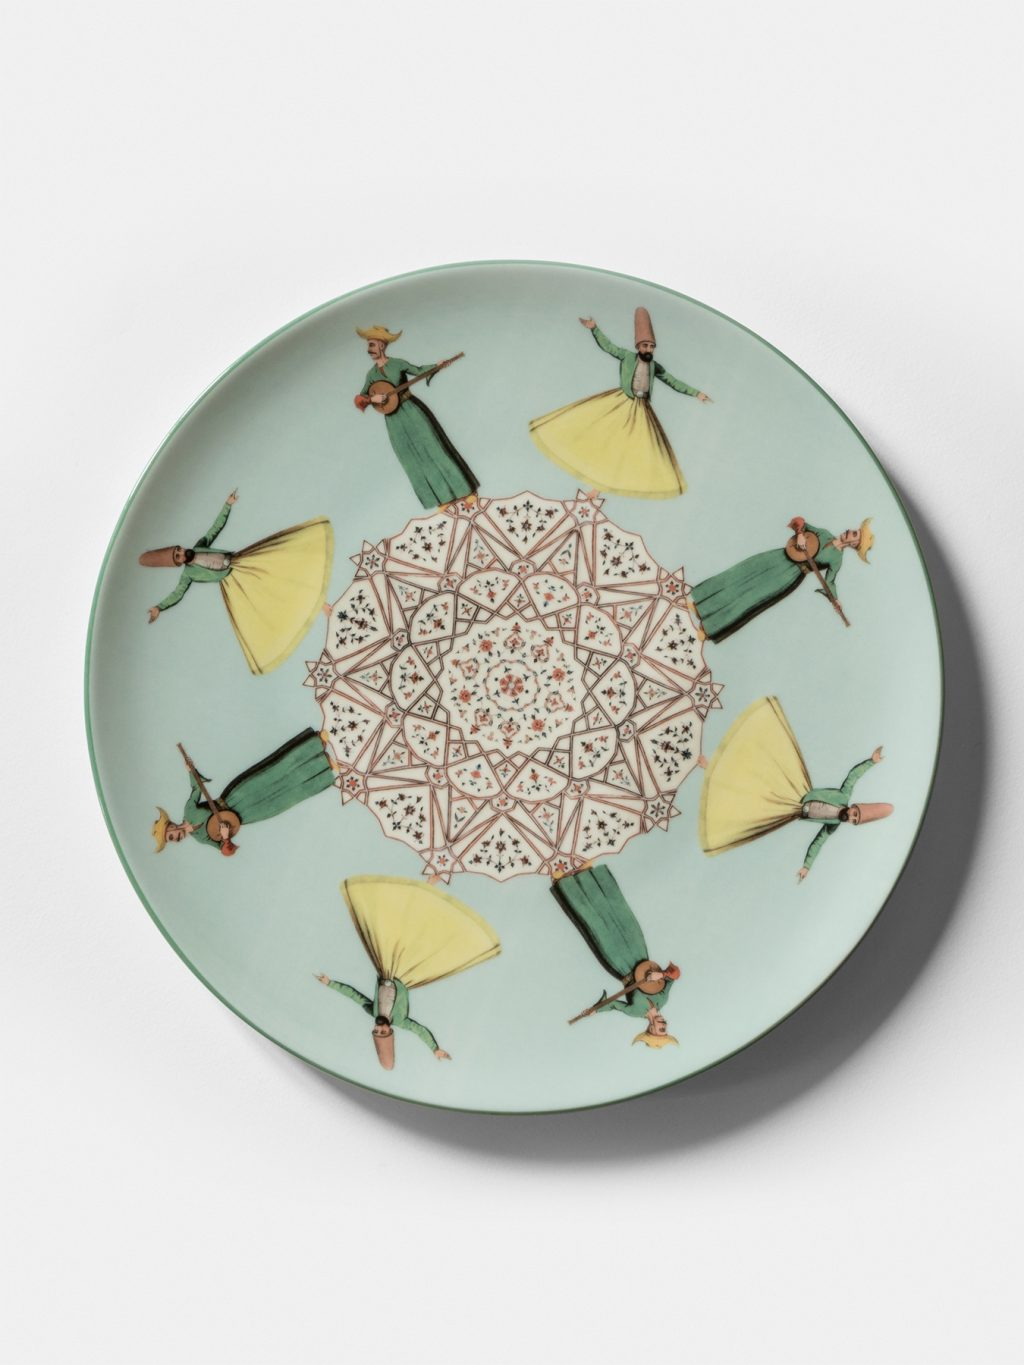 Constantinople, collection of dishes by Vito Nesta, dervishes